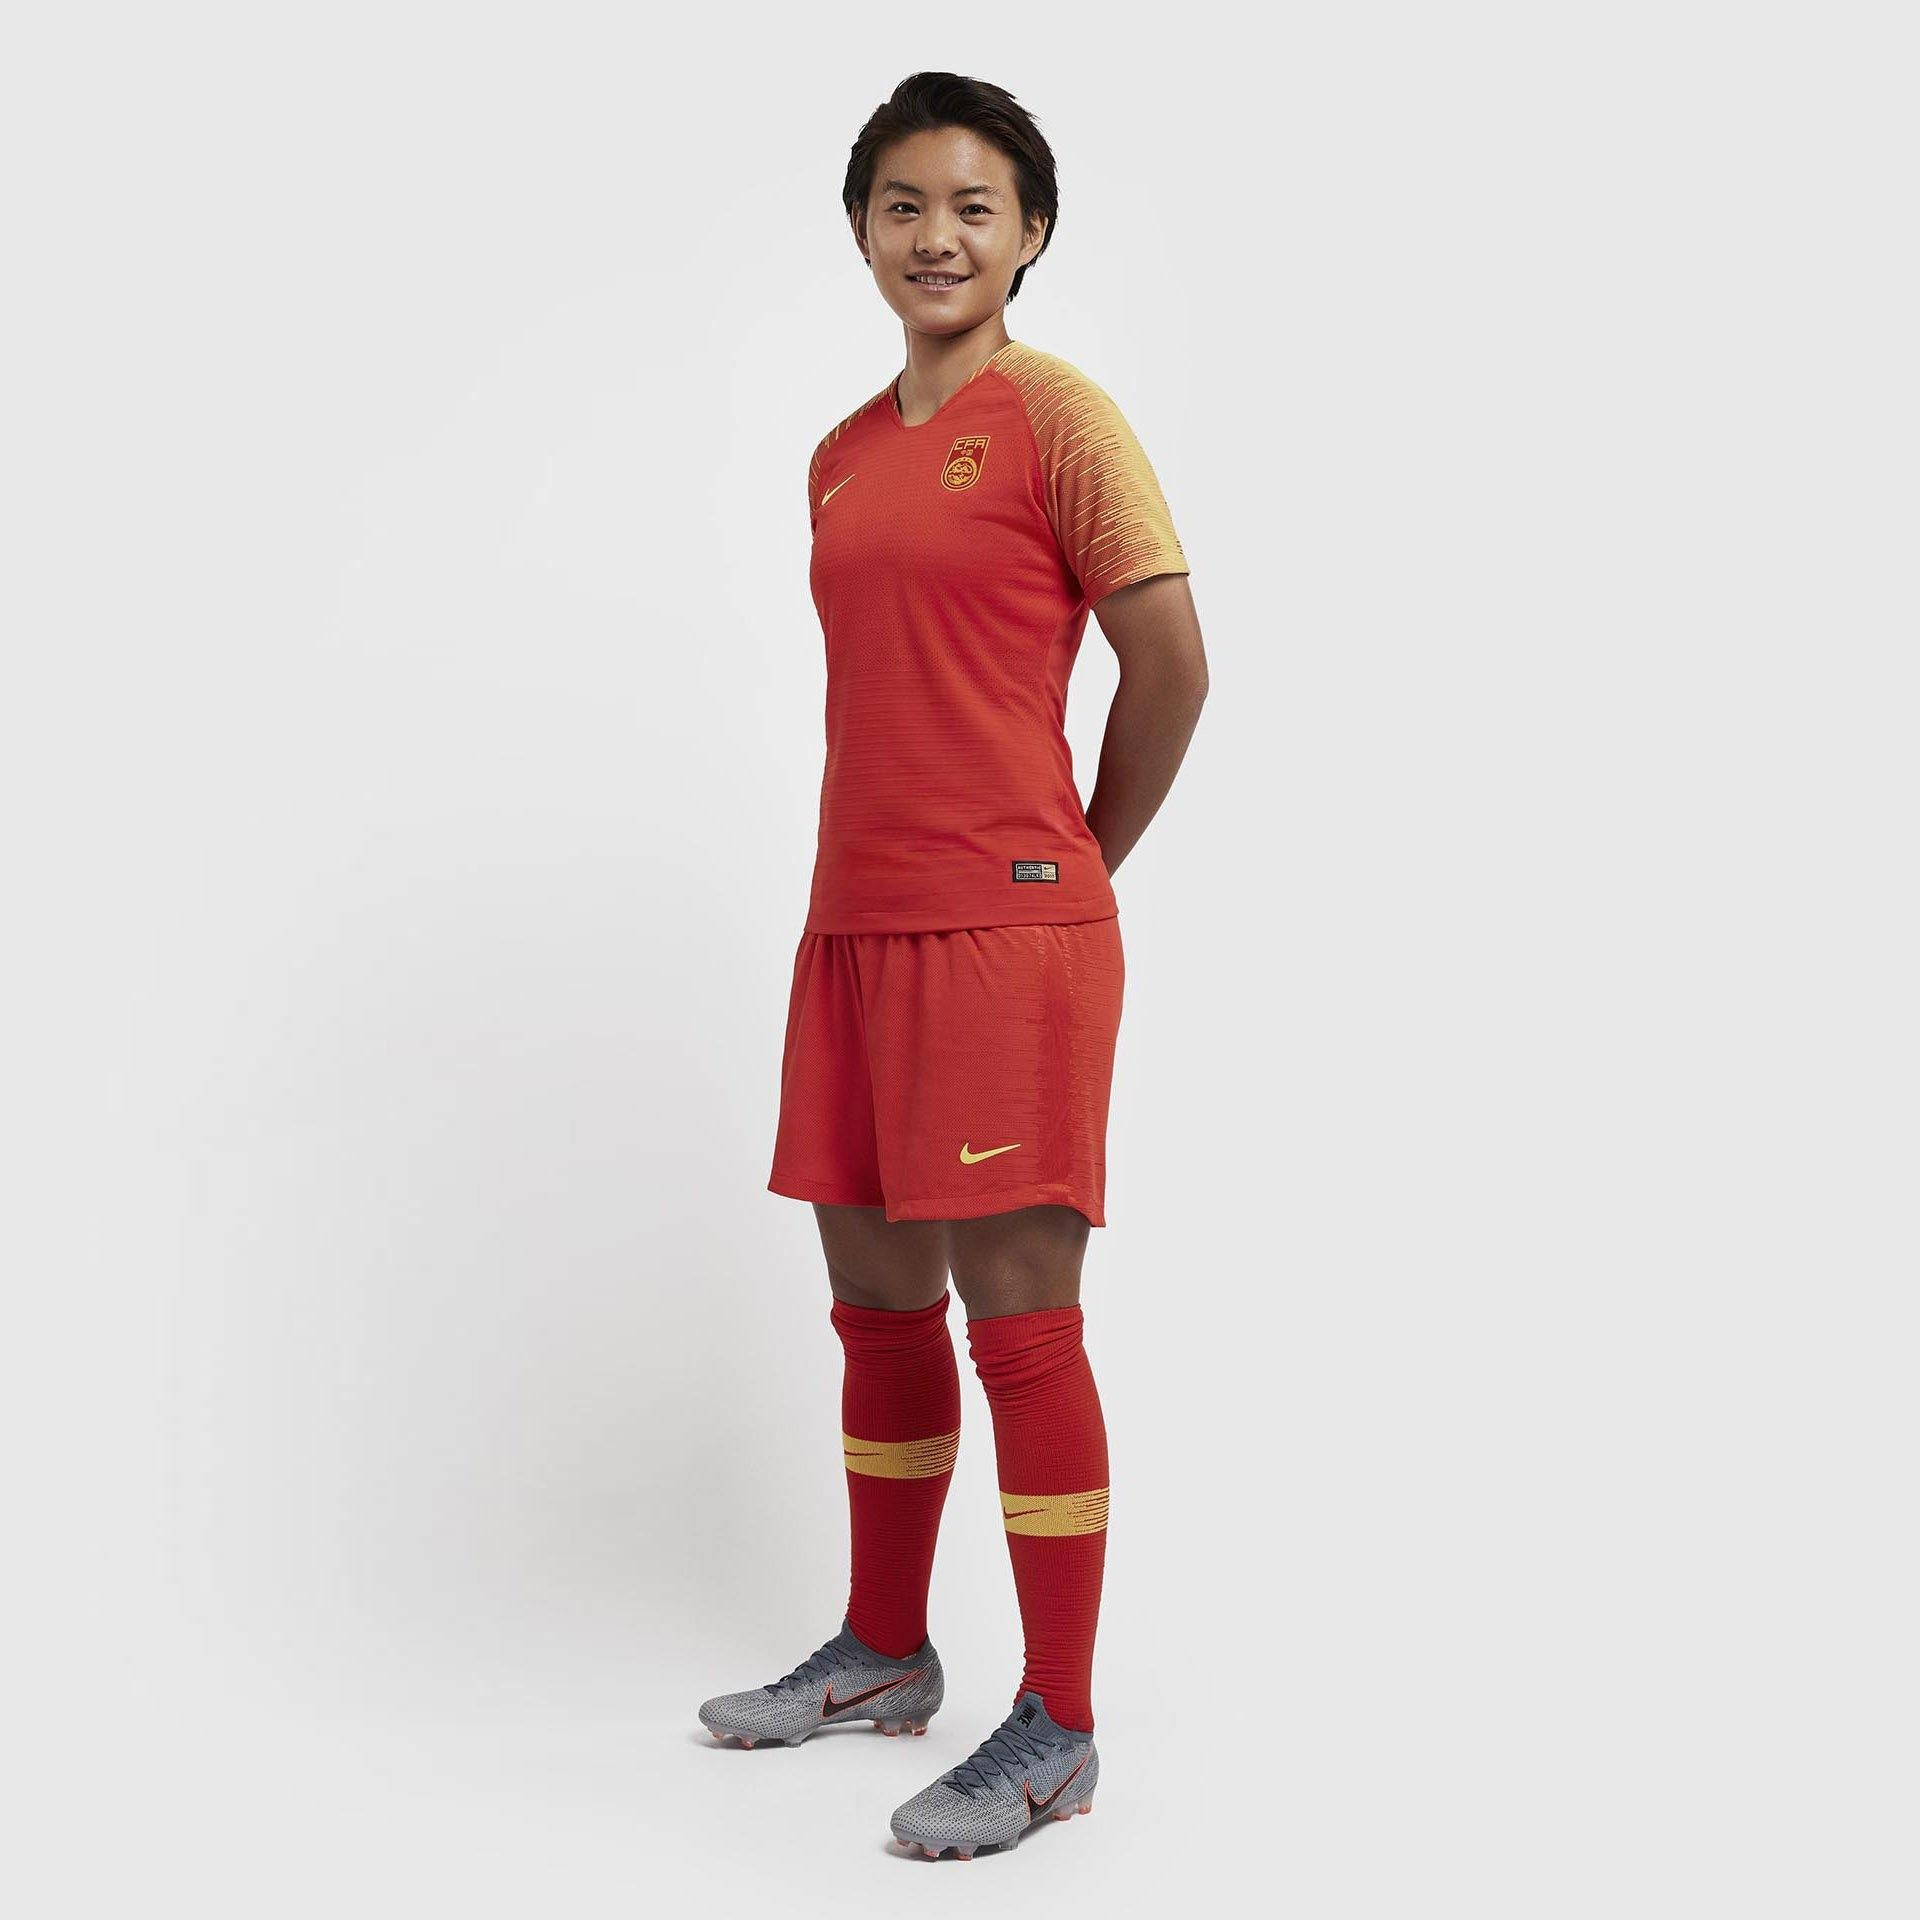 Maillot Femme Chine 2020 Nike Football Foot Coupe Du Monde freeshipping - Foot Online